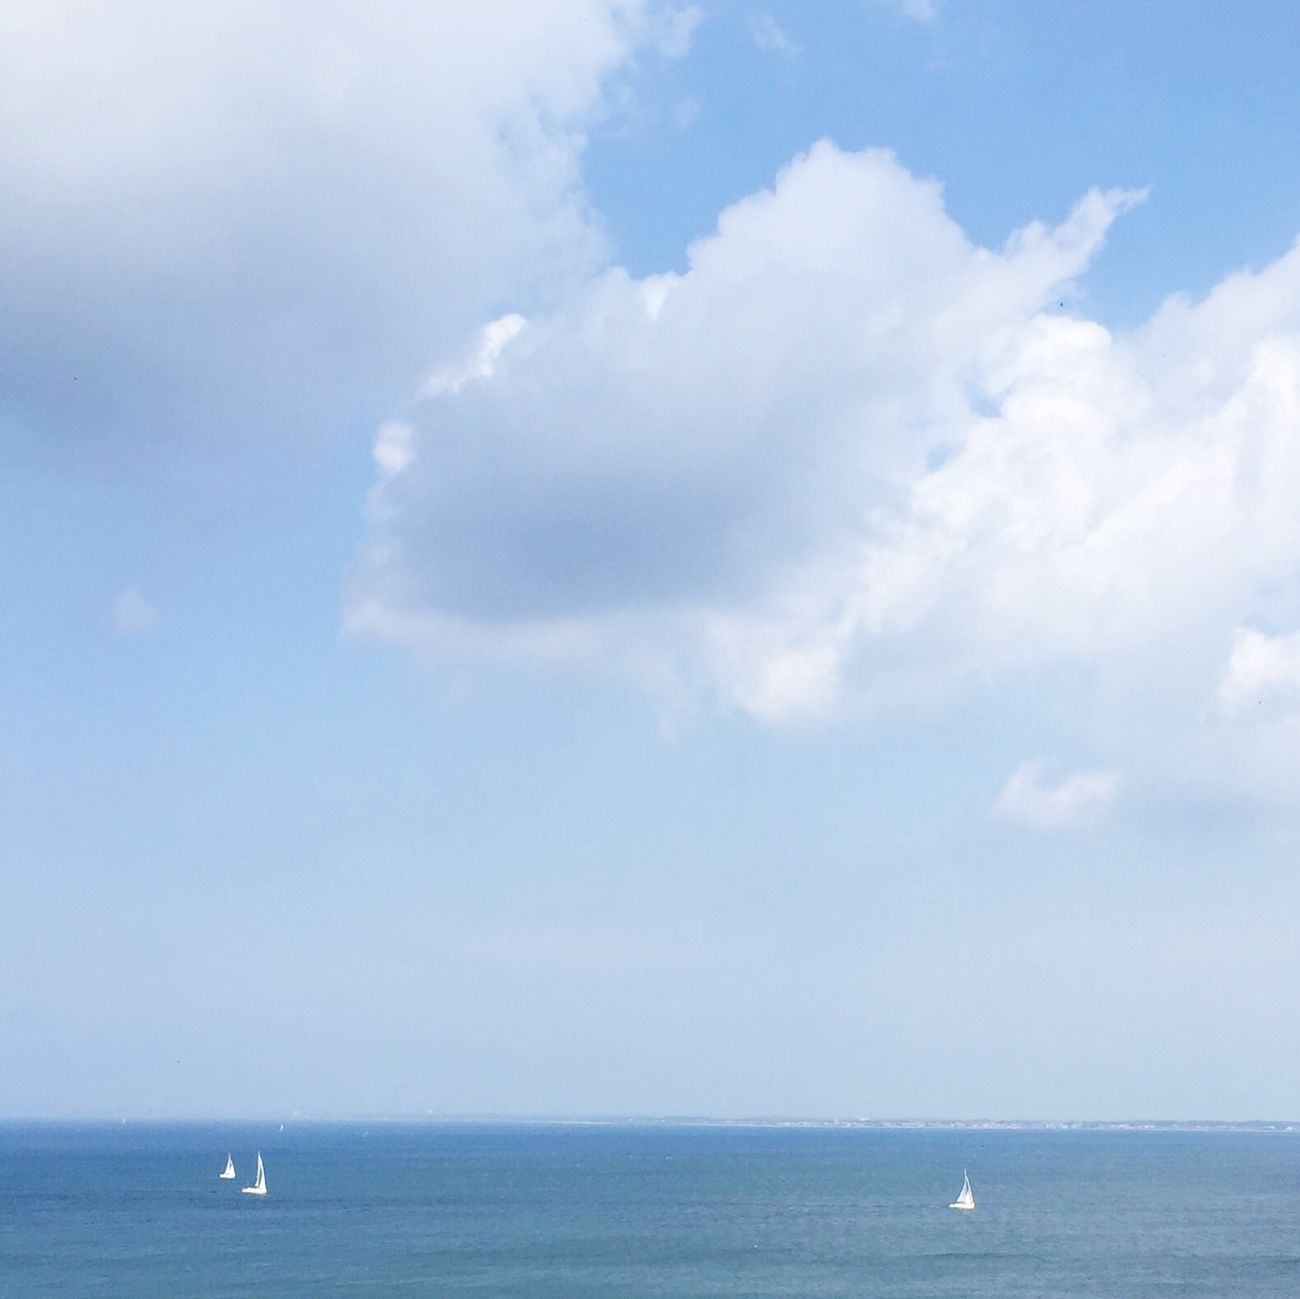 EyeEm Nature Lover Waterscape Love The Ocean AMPt - Minimalism Ocean View Tiny Ships